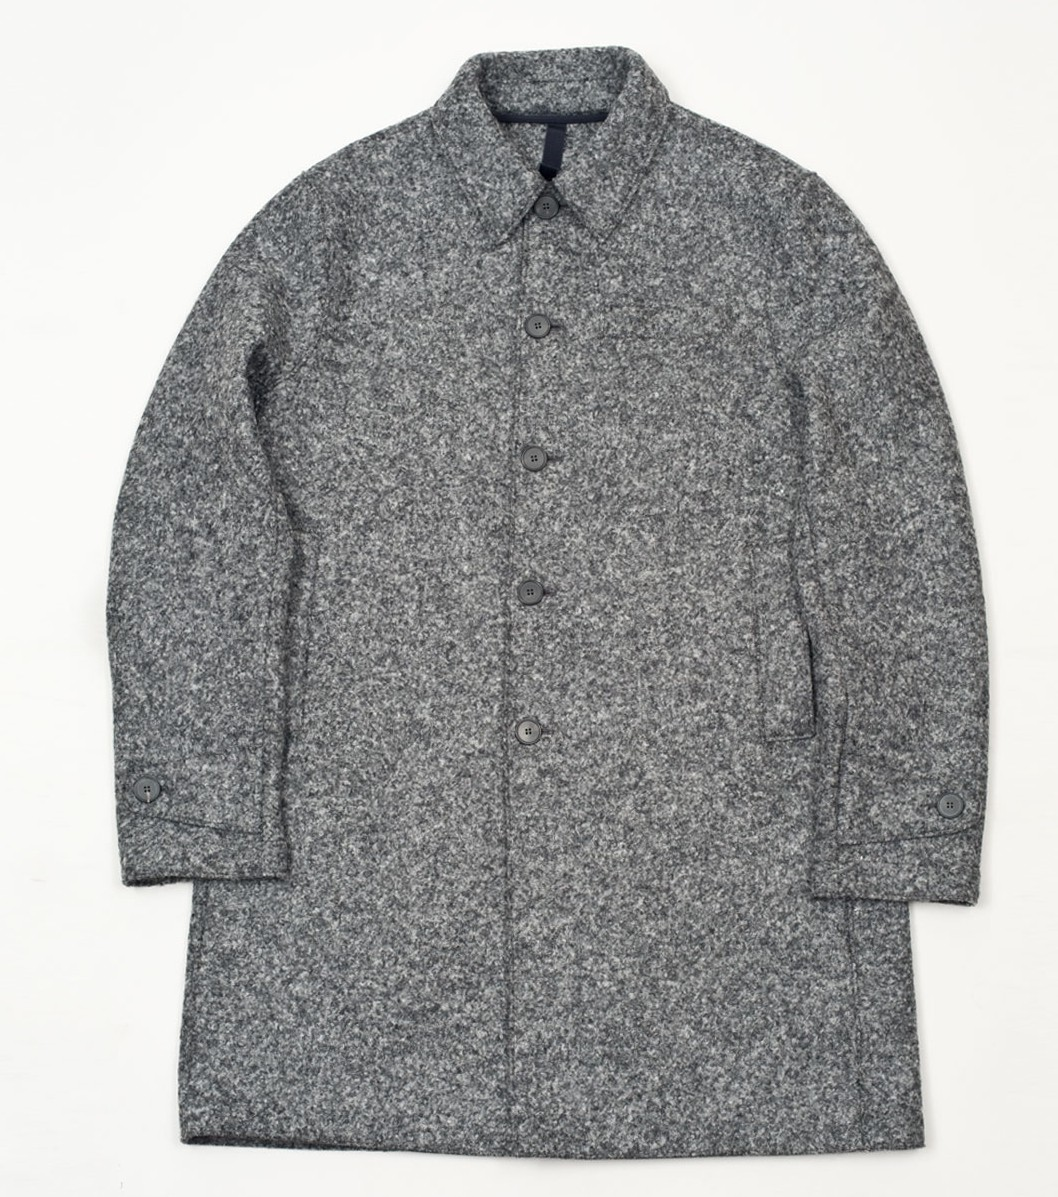 harris-wharf-grey-coat